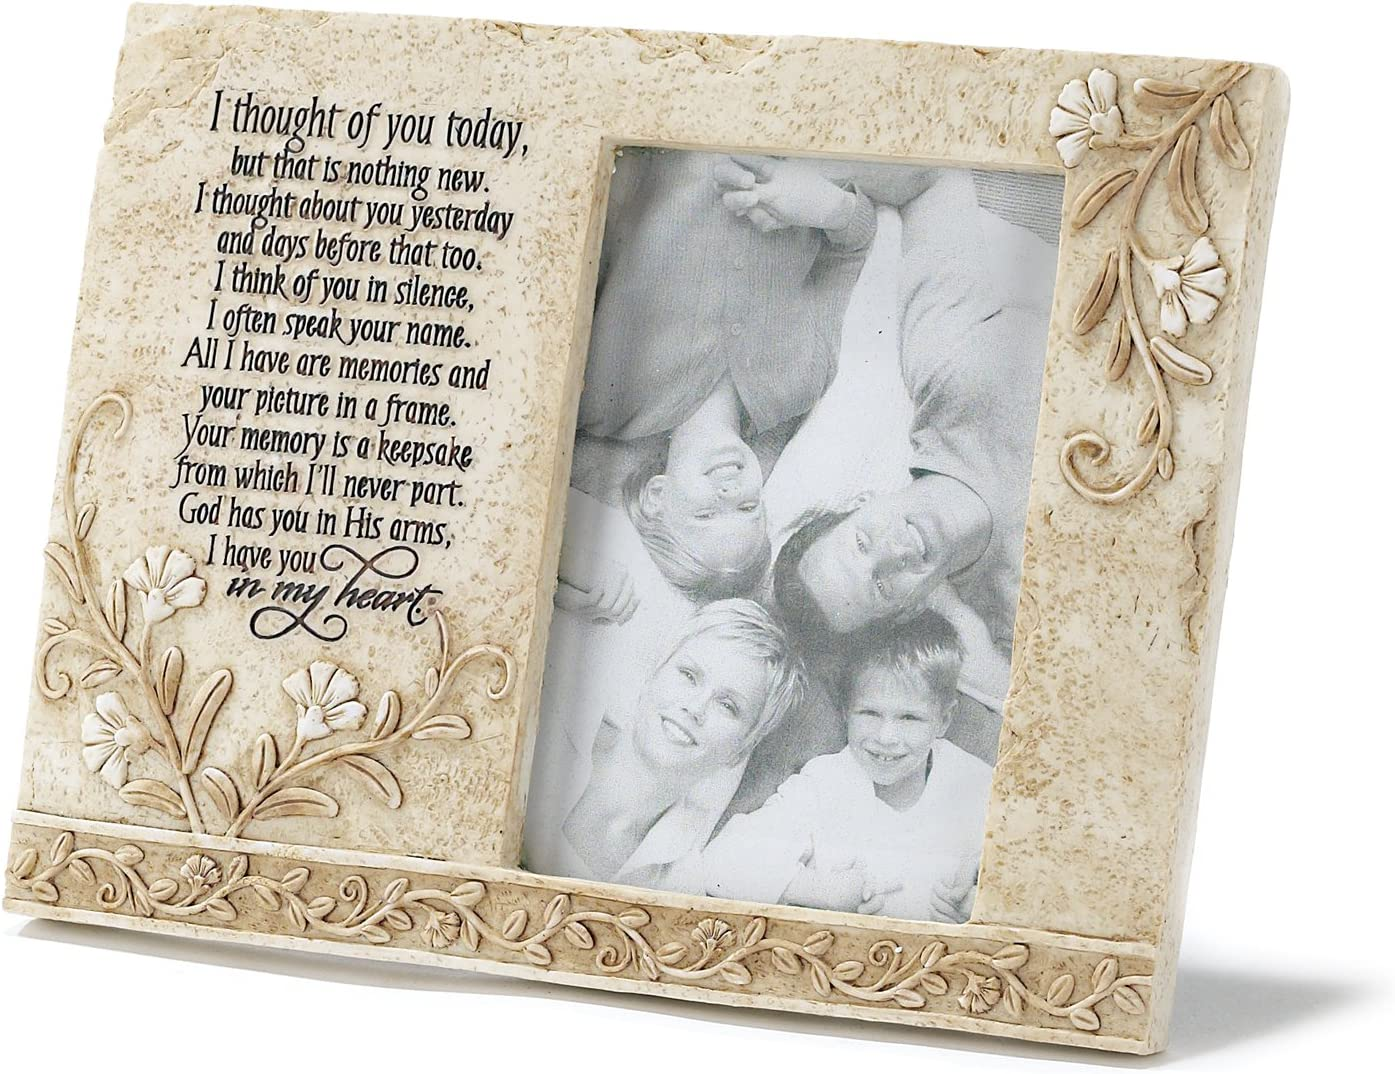 Jozie B 246202 Thought of You Today in Memory Photo Frame